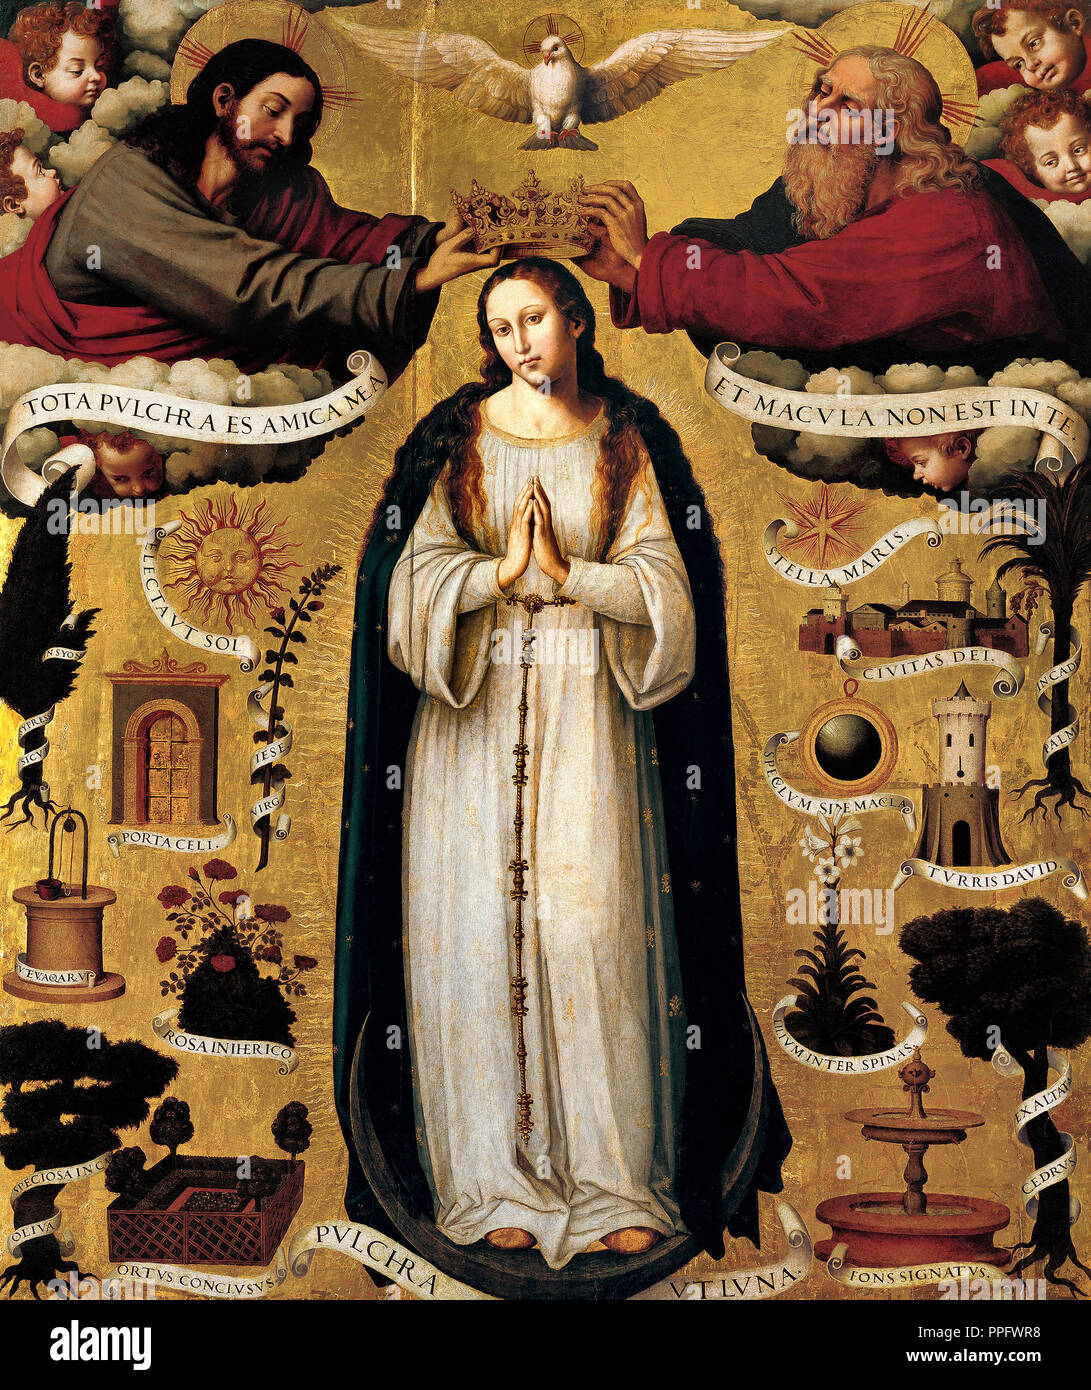 Juan de Juanes, The Immaculate Conception. Circa 1535-1540. Oil on panel. Fundacion Banco Santander, Madrid, Spain. - Stock Image